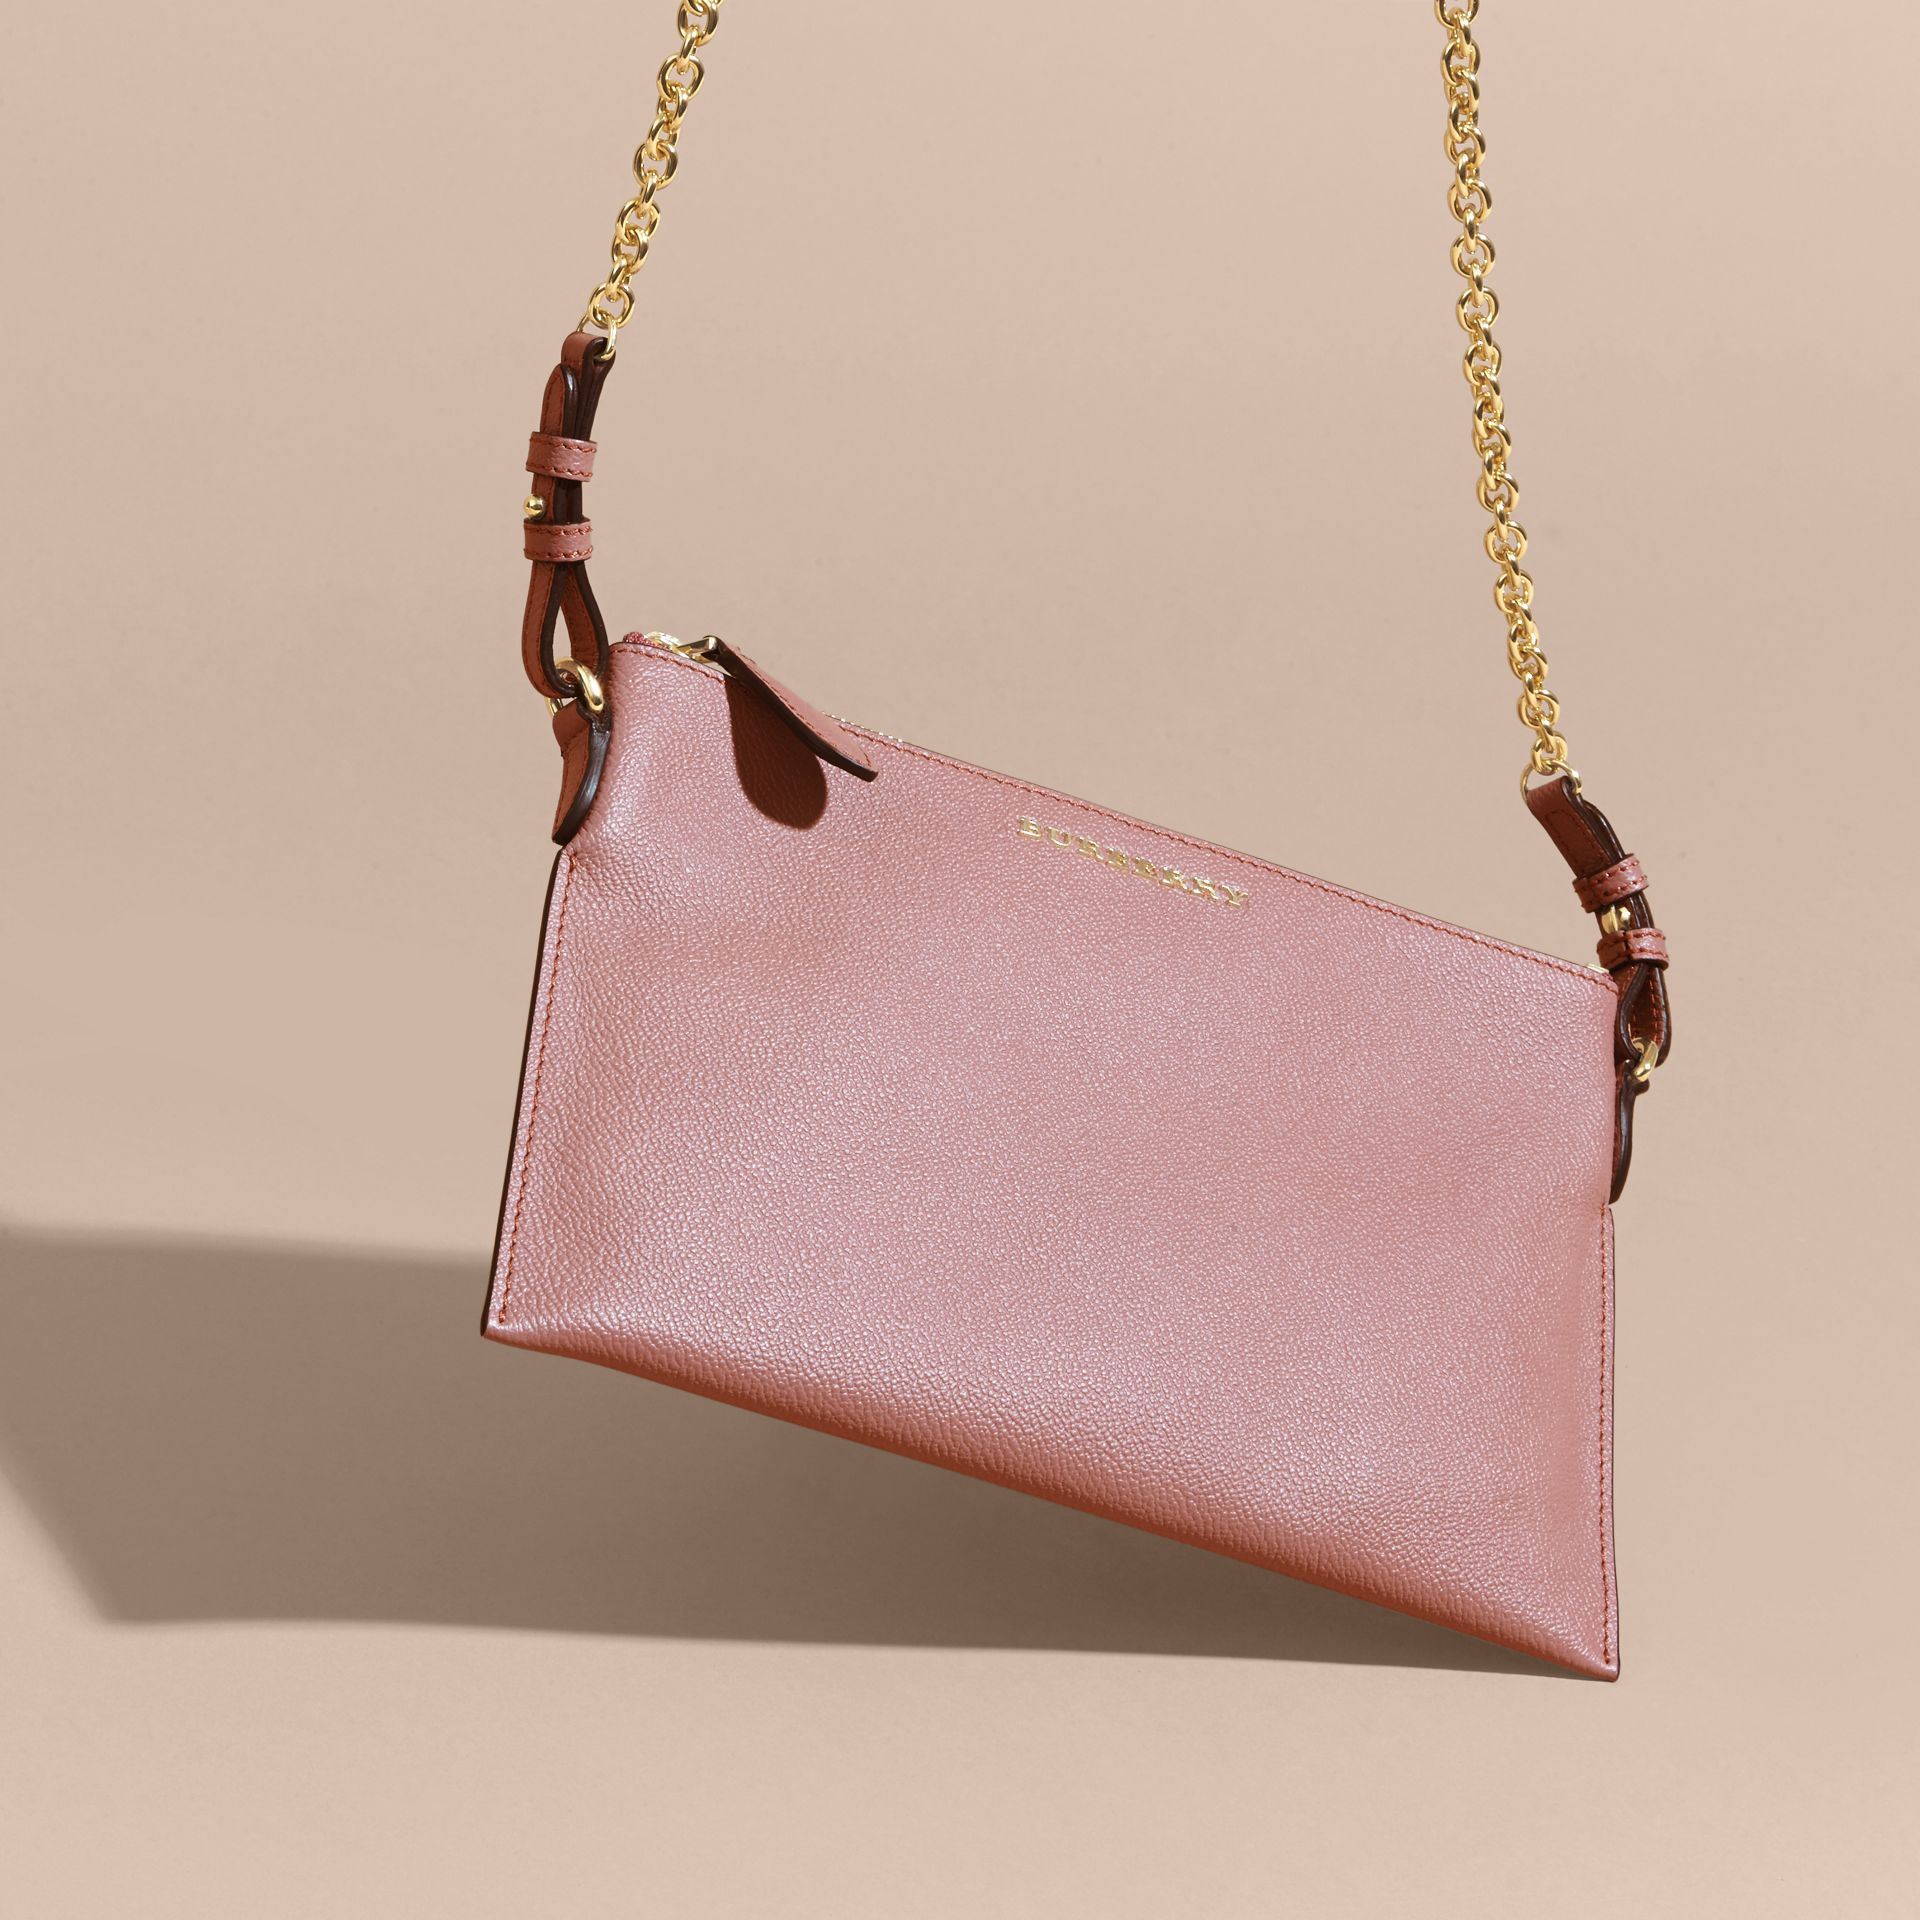 Leather Clutch Bag with Check Lining in Dusty Pink - Women | Burberry - gallery image 8